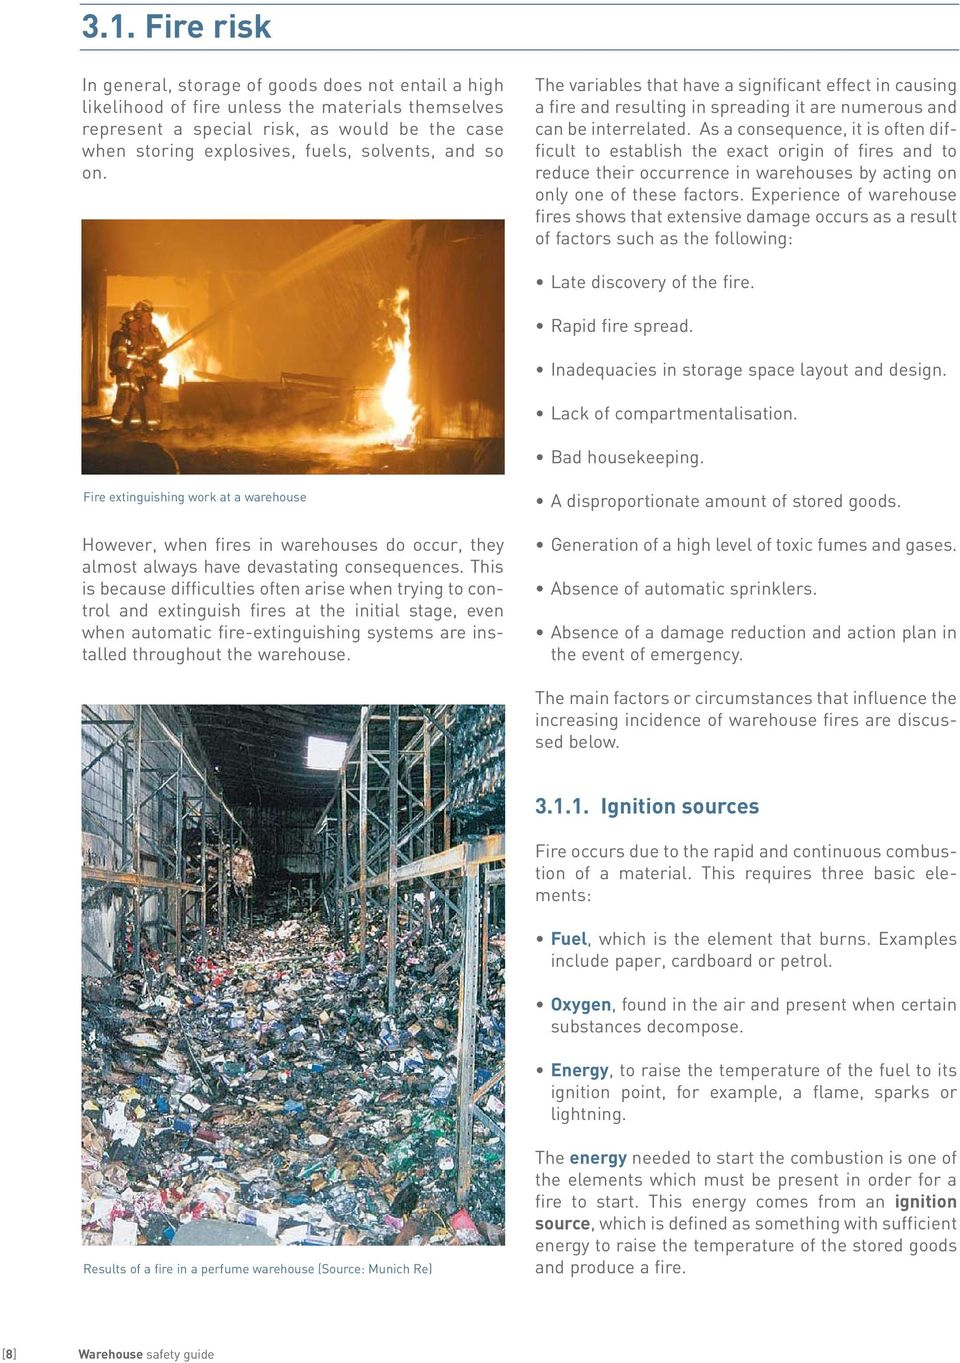 As a consequence, it is often difficult to establish the exact origin of fires and to reduce their occurrence in warehouses by acting on only one of these factors.